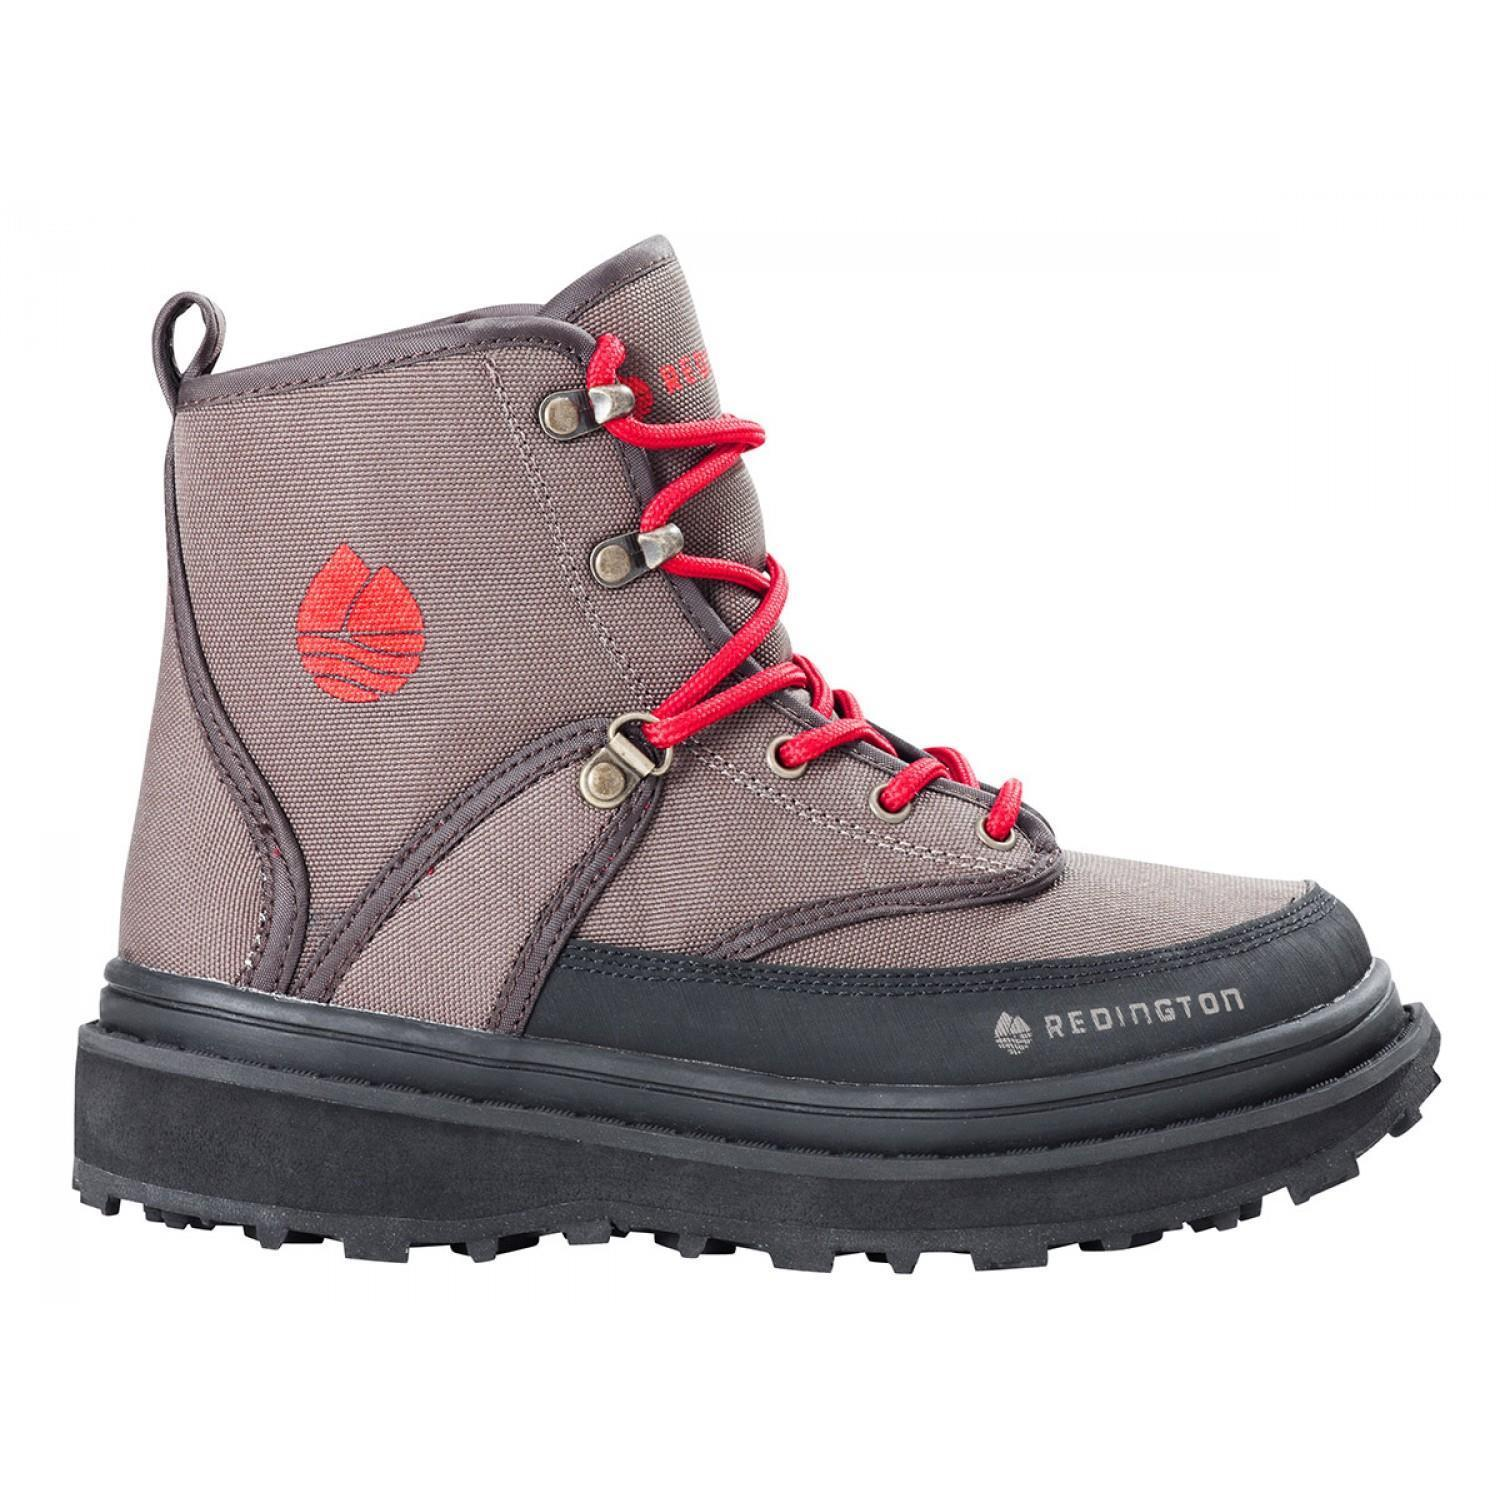 Redington Crosswater Youth Wading Boots, Rubber Soles, no tax and free ship